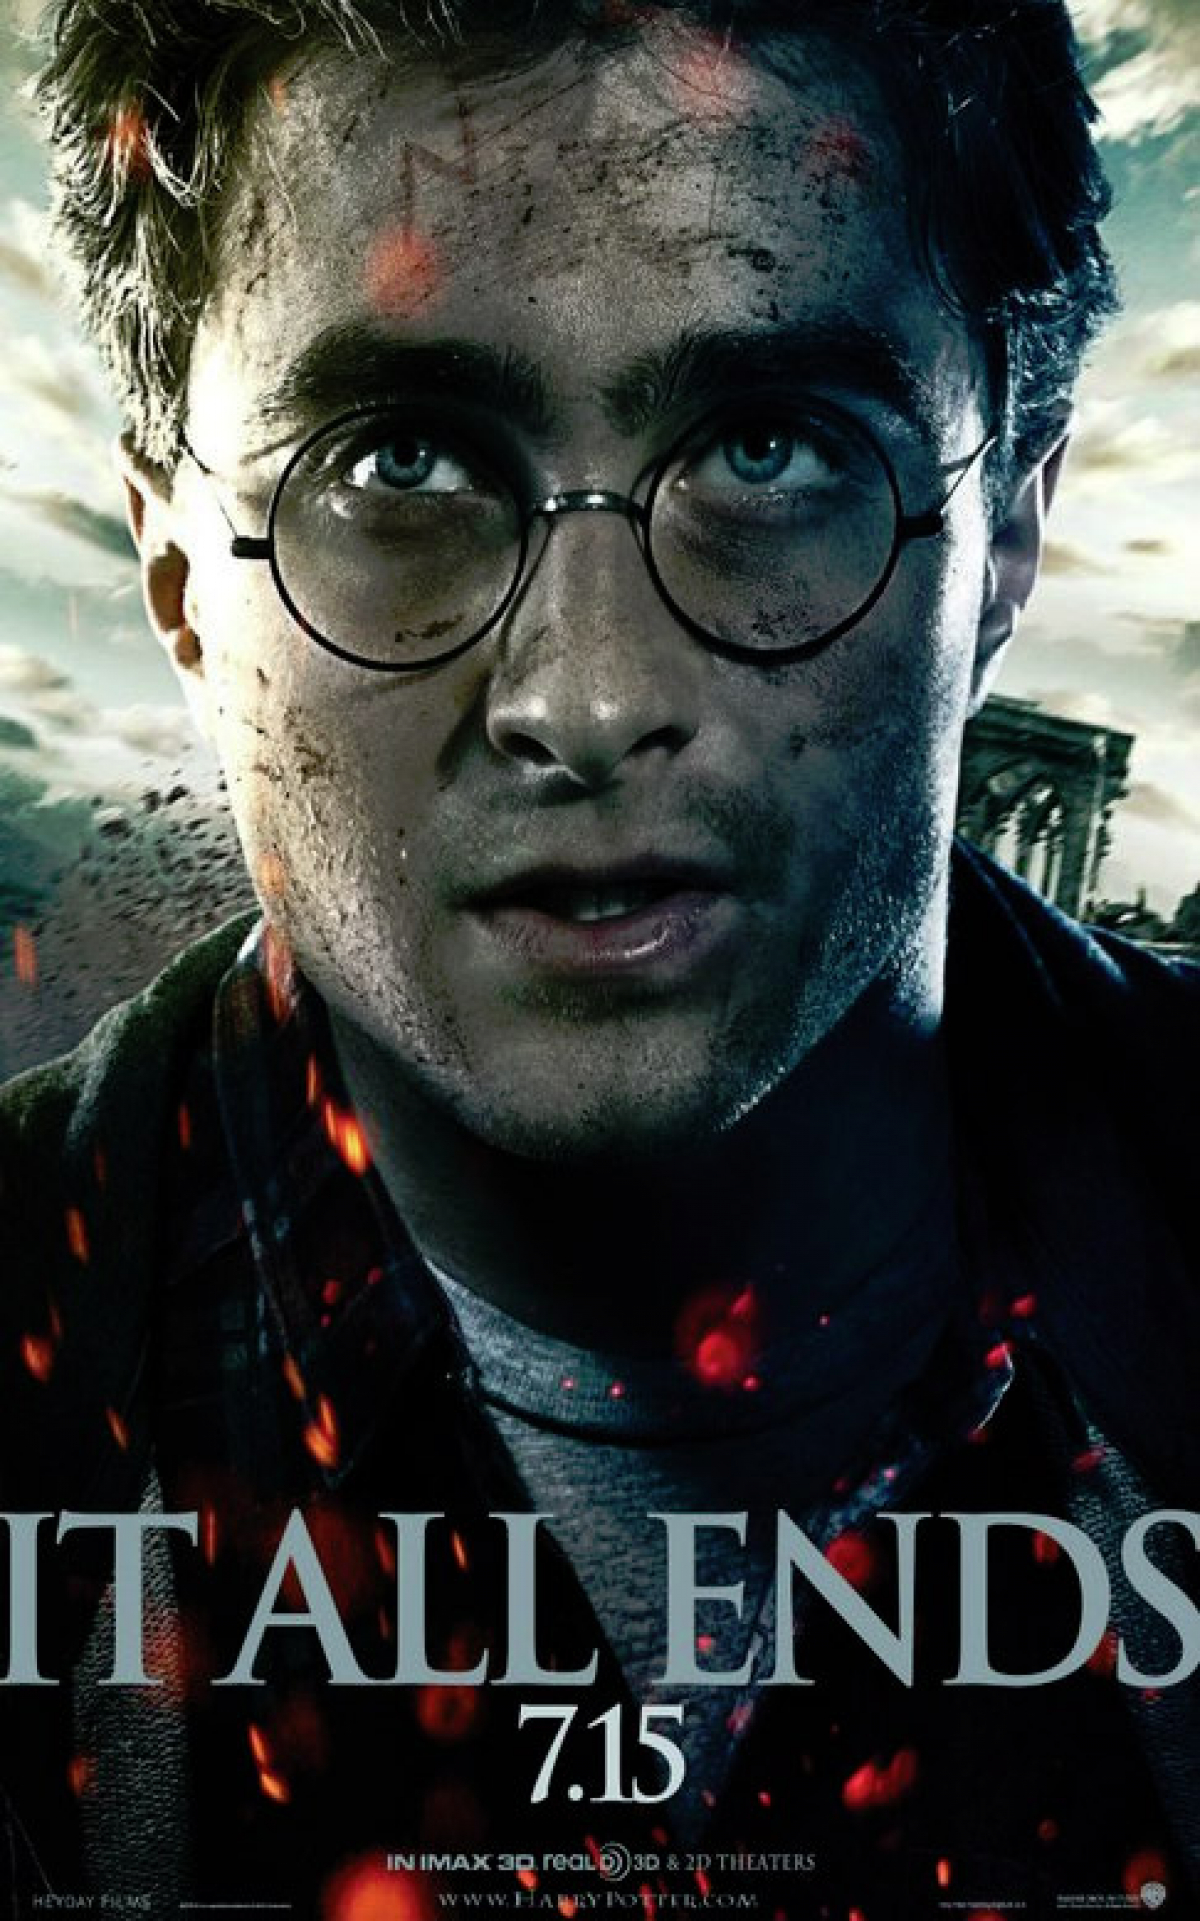 New Poster For Harry Potter And The Deathly Hallows Part 2